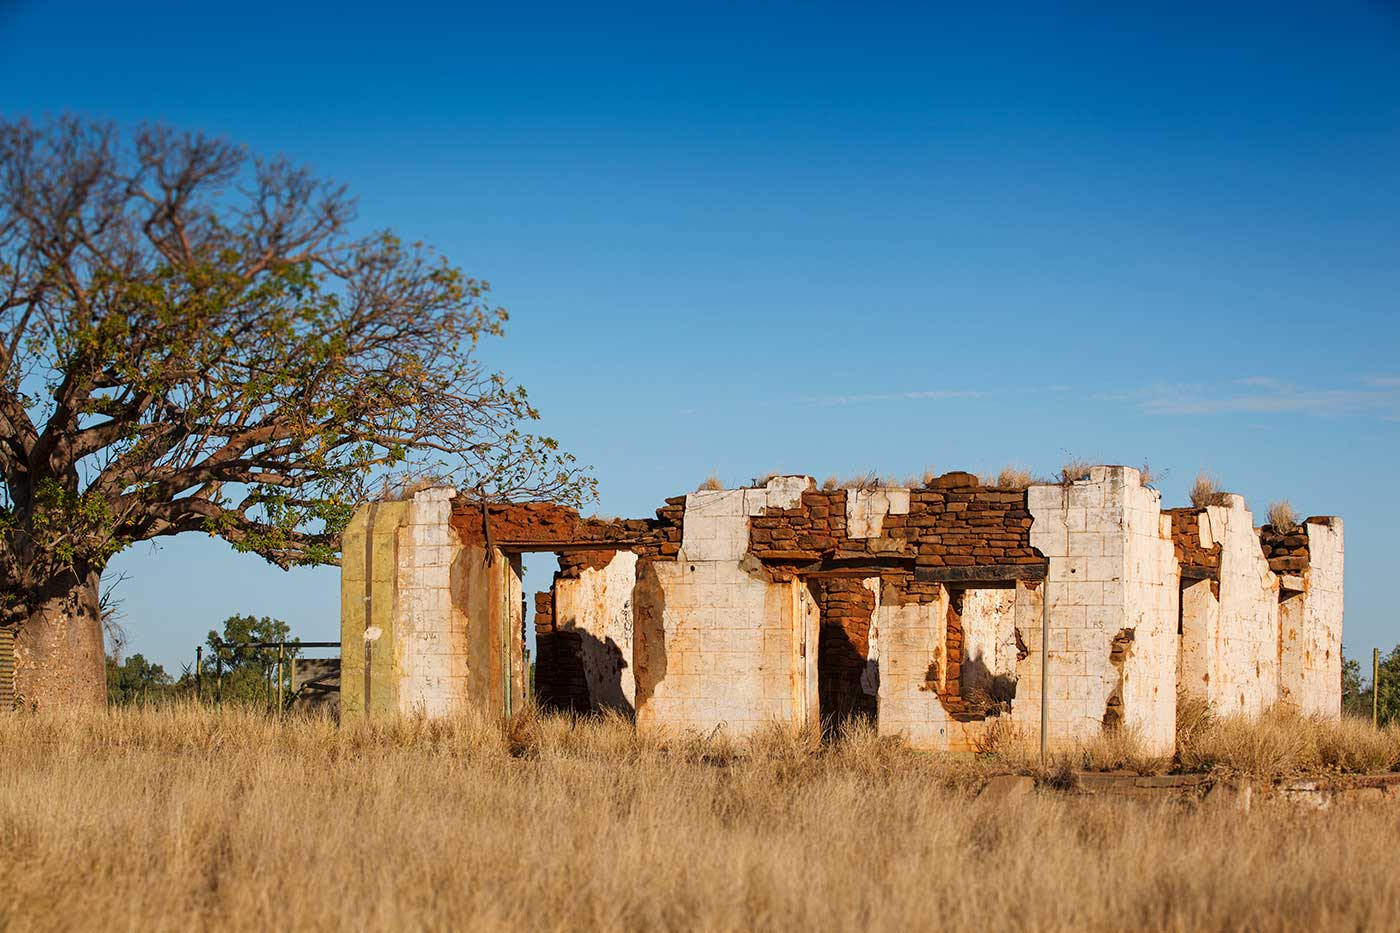 A stone building, in disrepair - click to view larger image